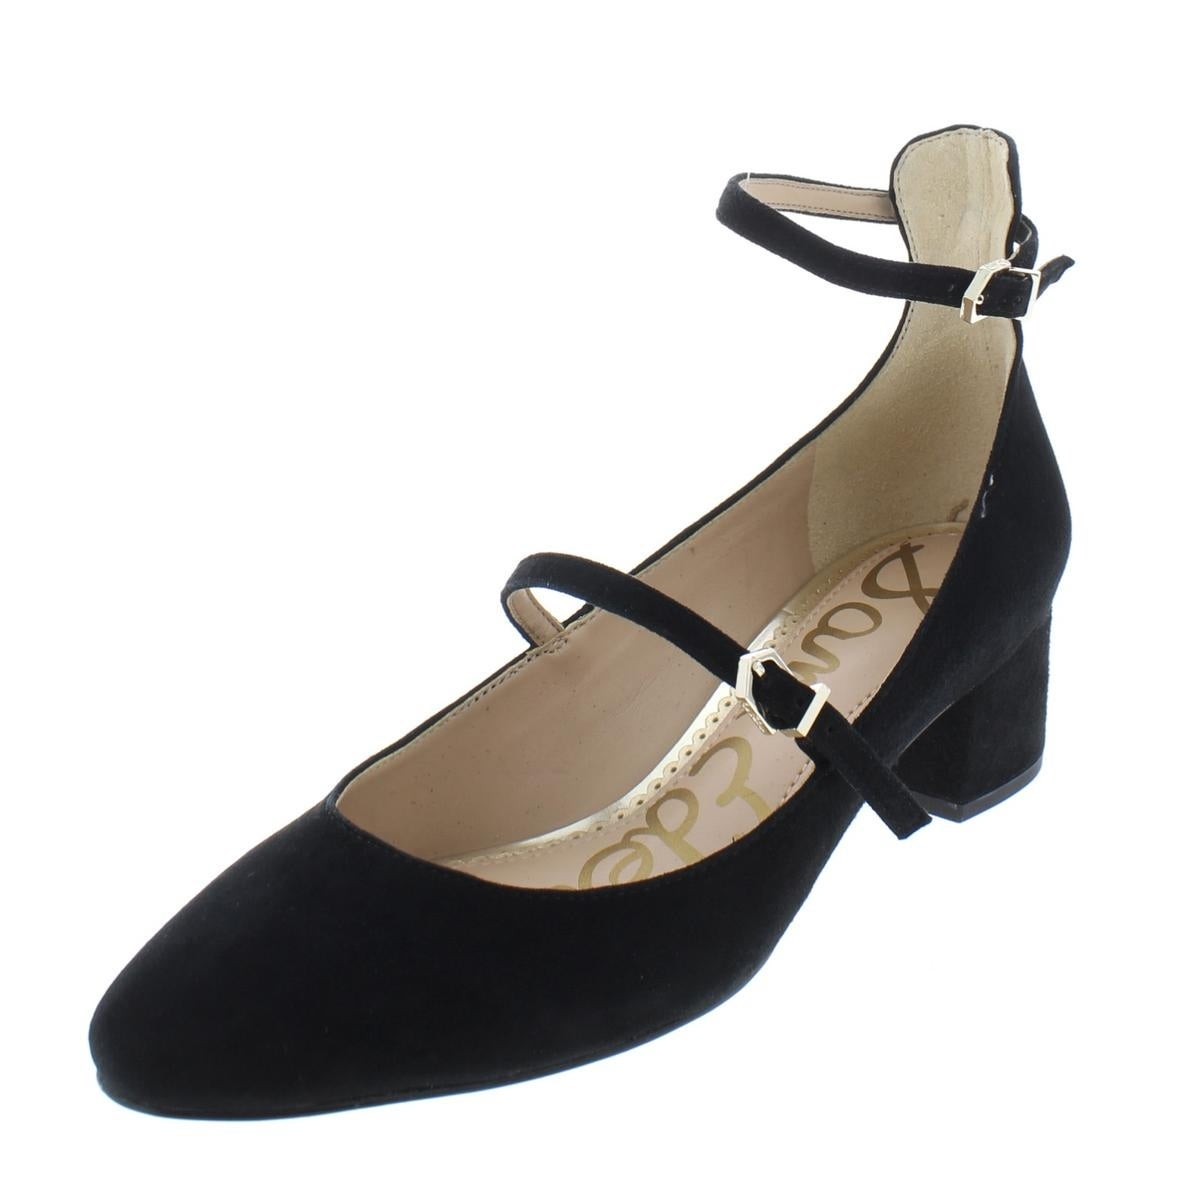 ce8cd20b54d6 Shop Sam Edelman Womens Lulie Pumps Solid Ankle Strap - Free Shipping Today  - Overstock - 23615042